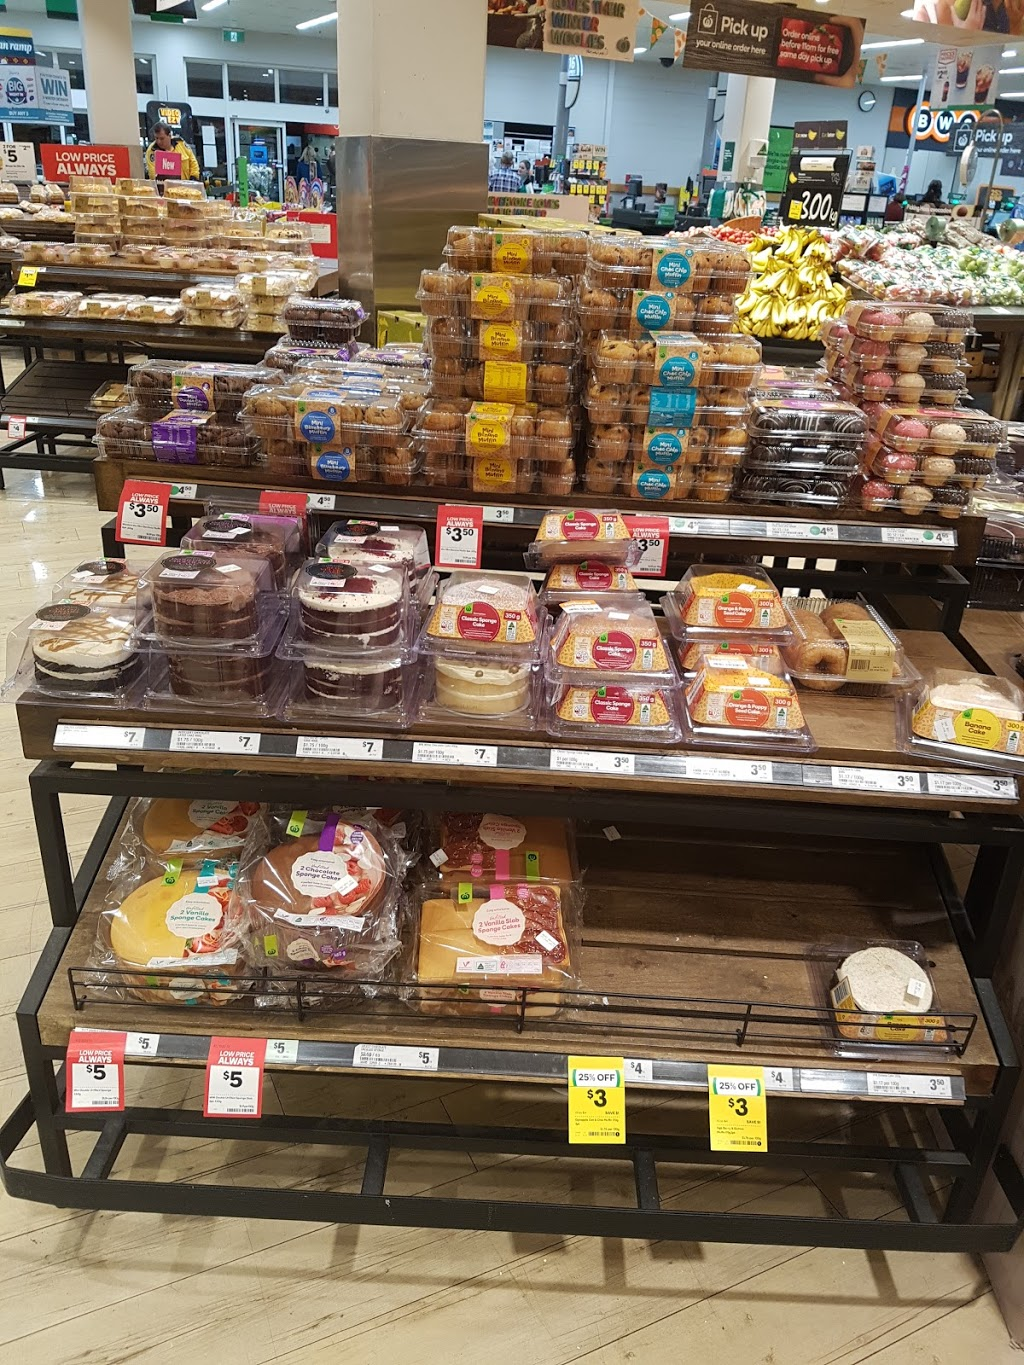 Woolworths   supermarket   88 Wrights Rd, Kellyville NSW 2155, Australia   0296776447 OR +61 2 9677 6447